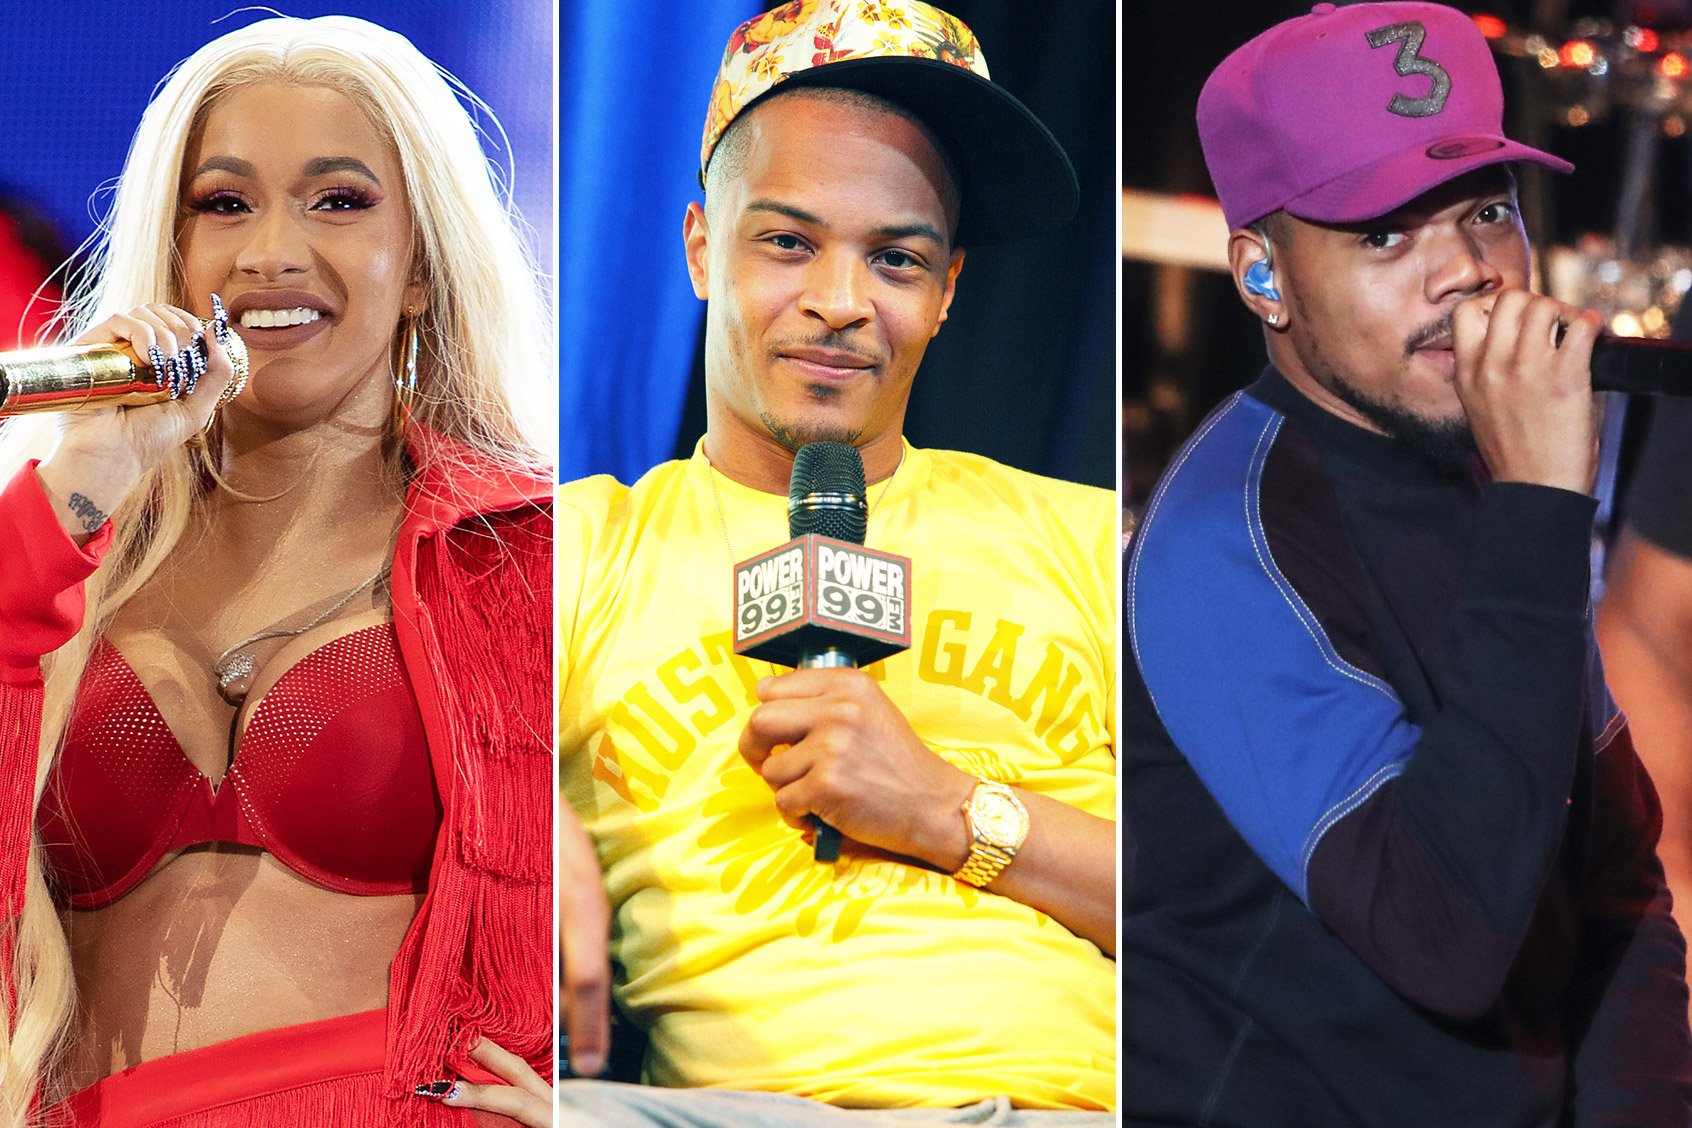 Cardi B Rapper: Cardi B, Chance The Rapper, And T.I. Have Their Own